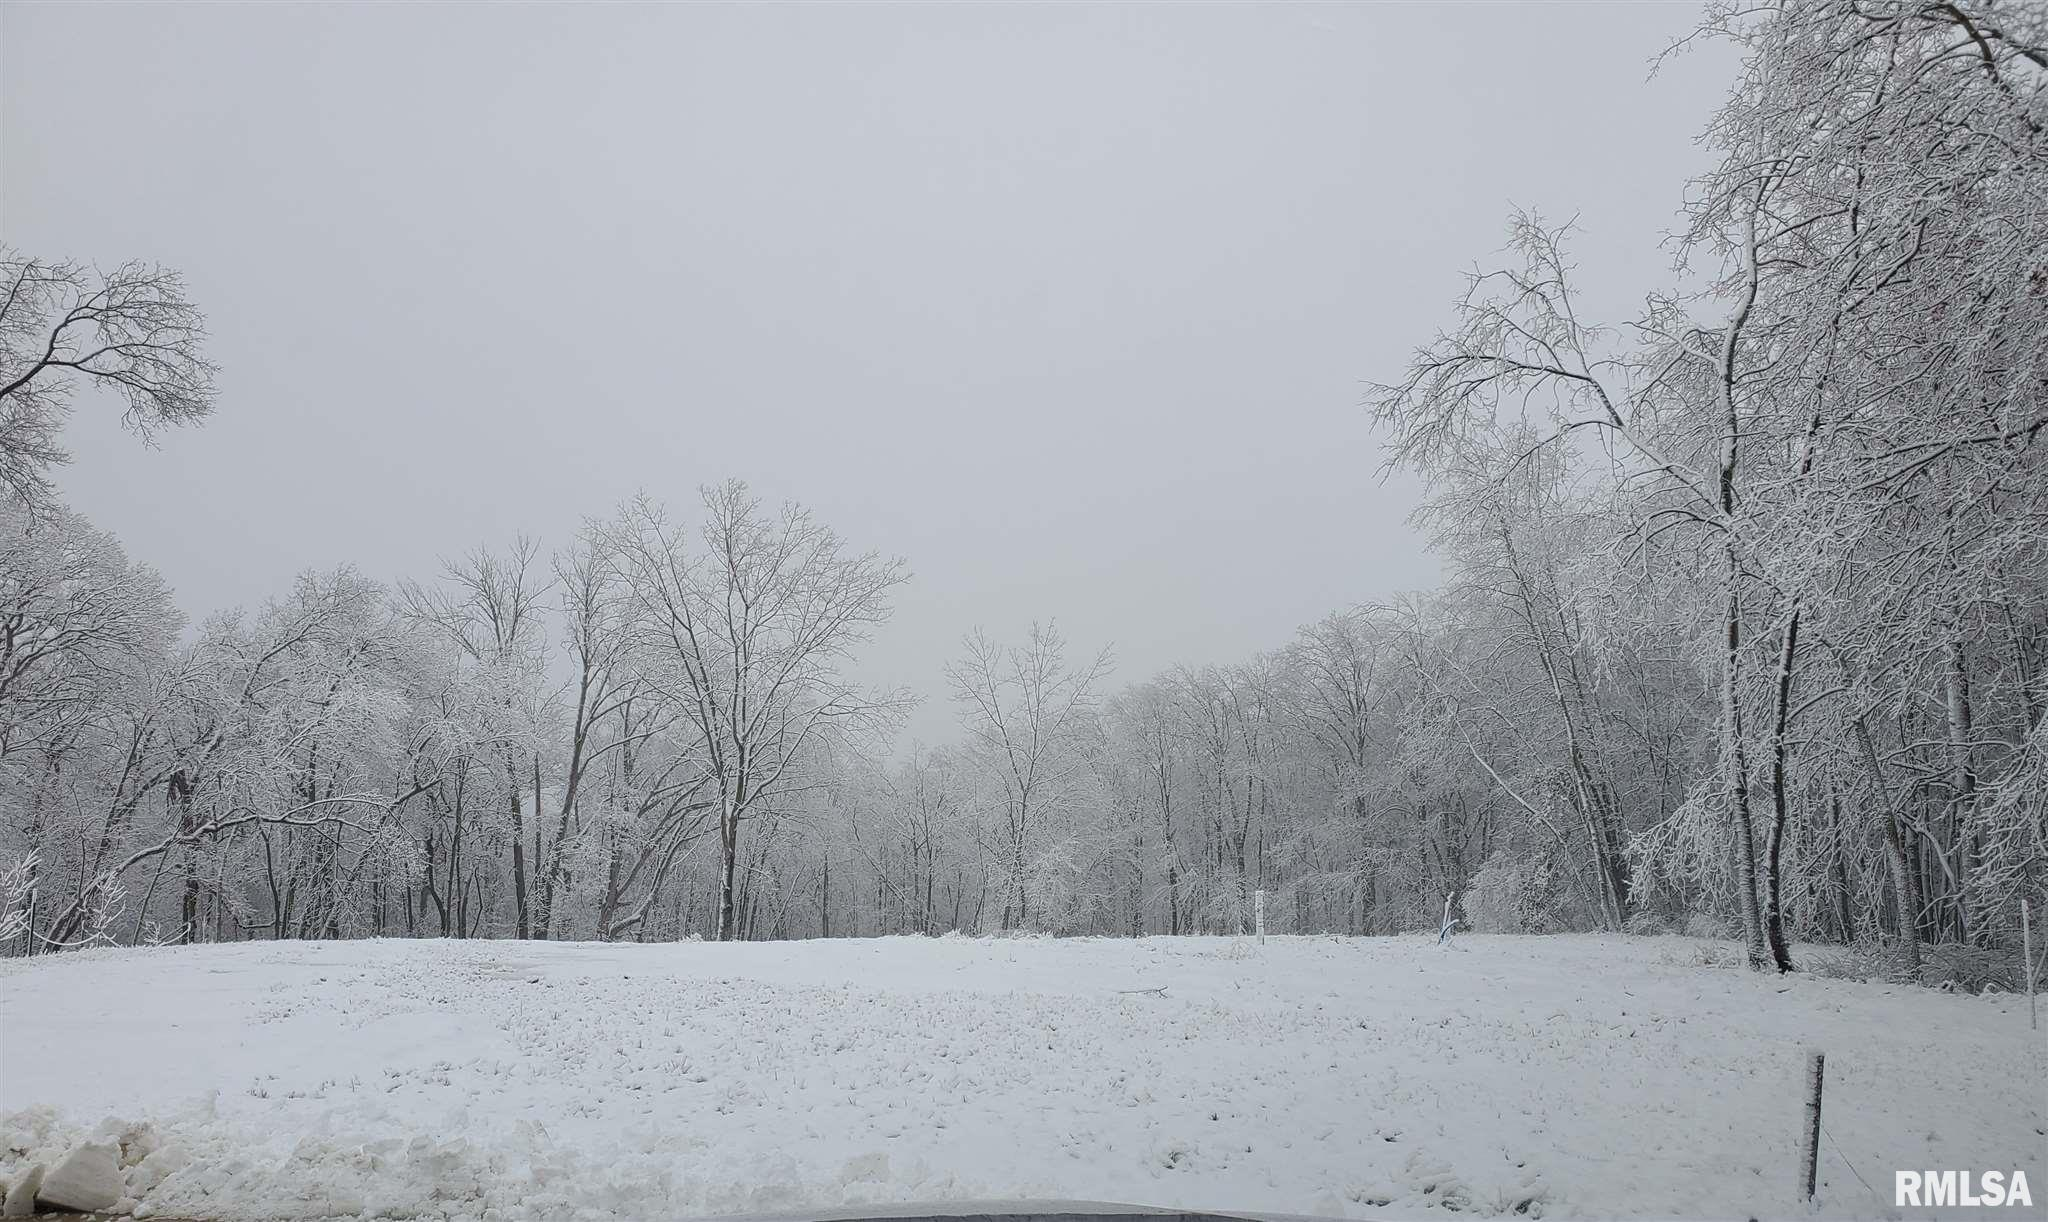 117 ROSEMARY Property Photo - Germantown Hills, IL real estate listing